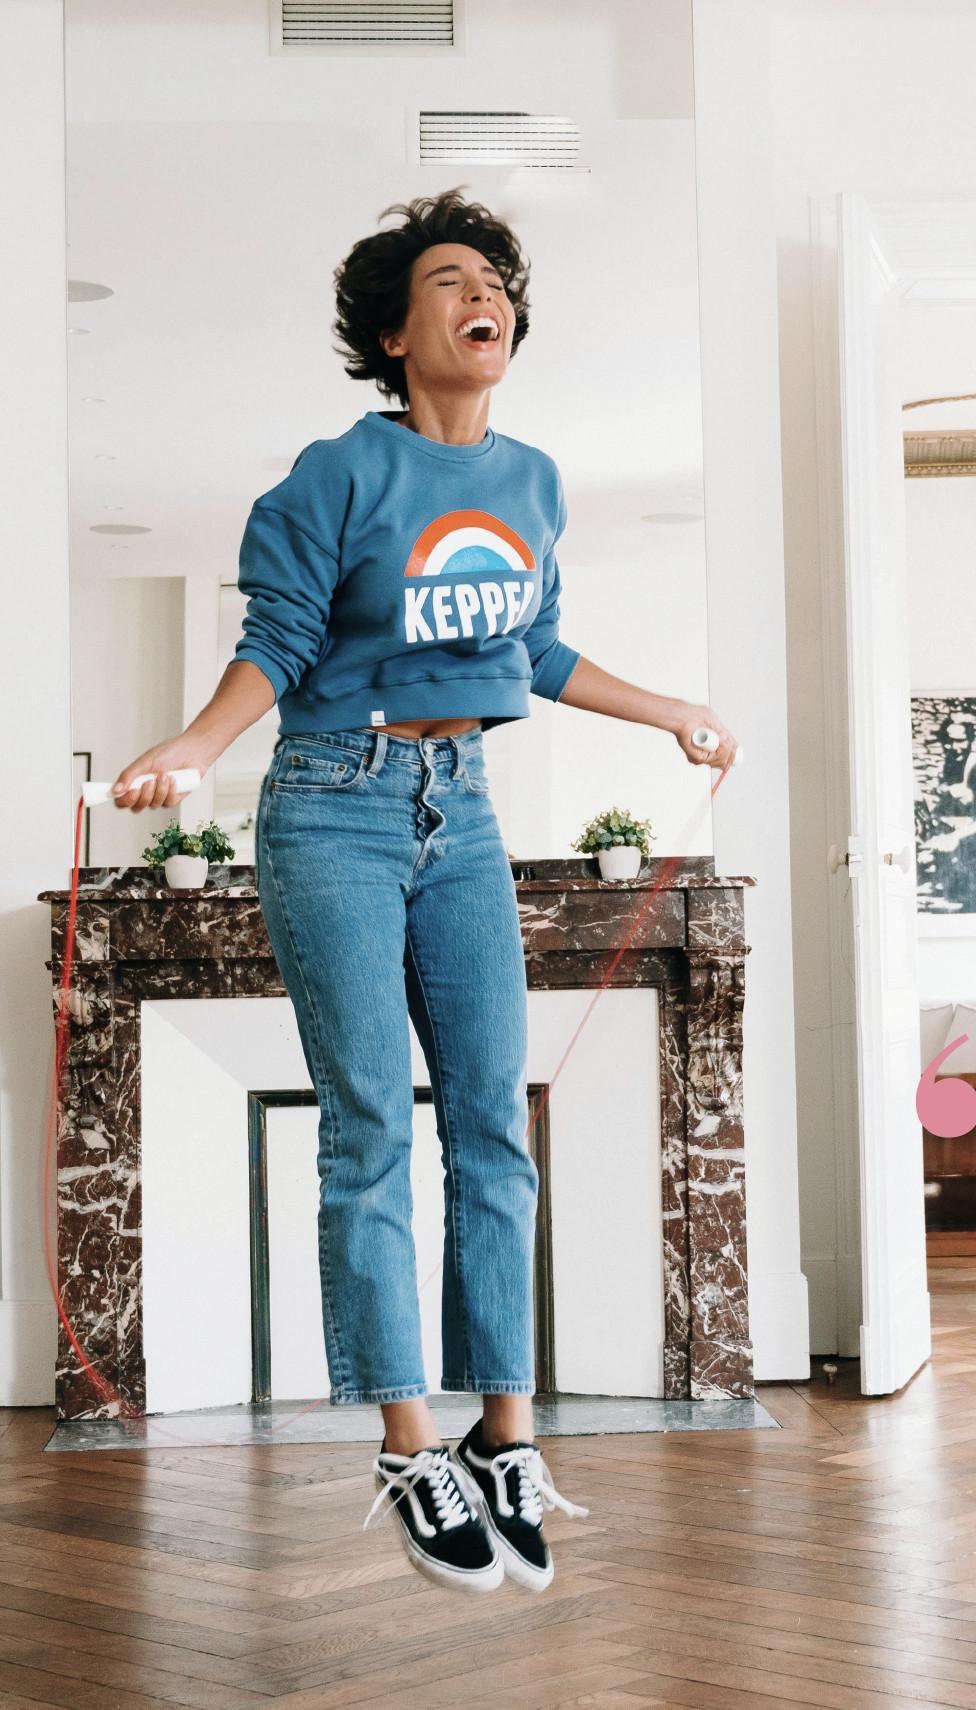 Kepper, French eco-responsible brand